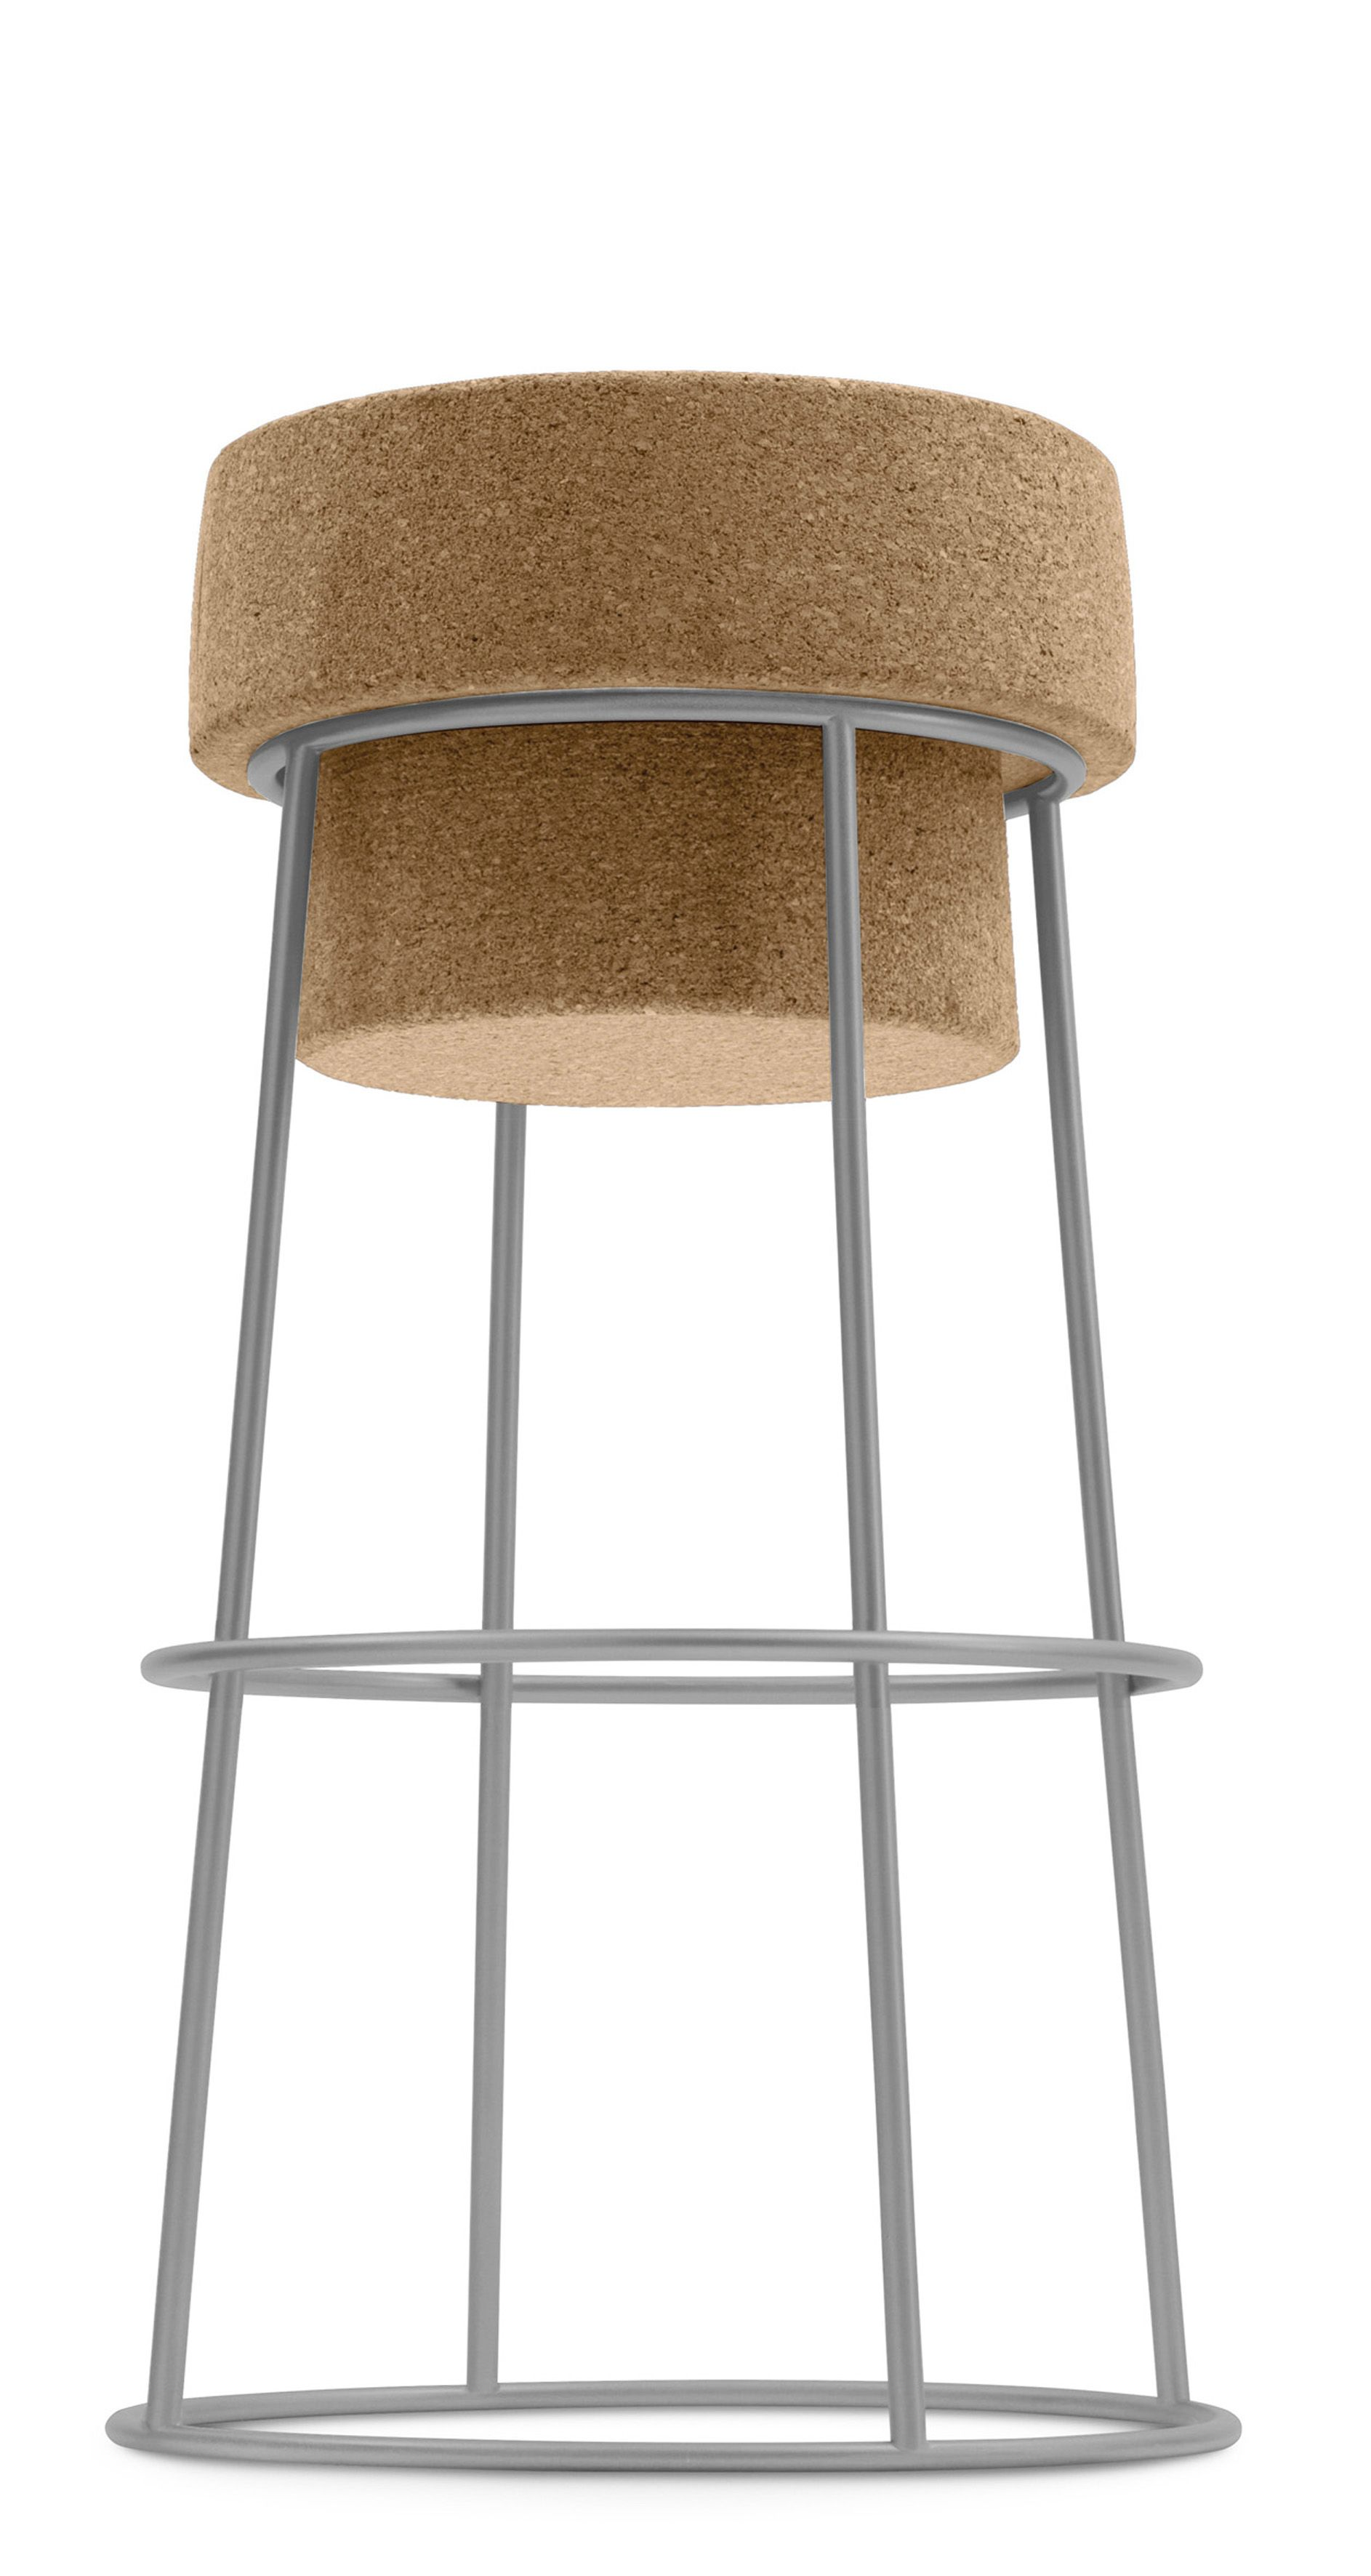 Cork Stool From Domitalia Chairs Chairs Chairs